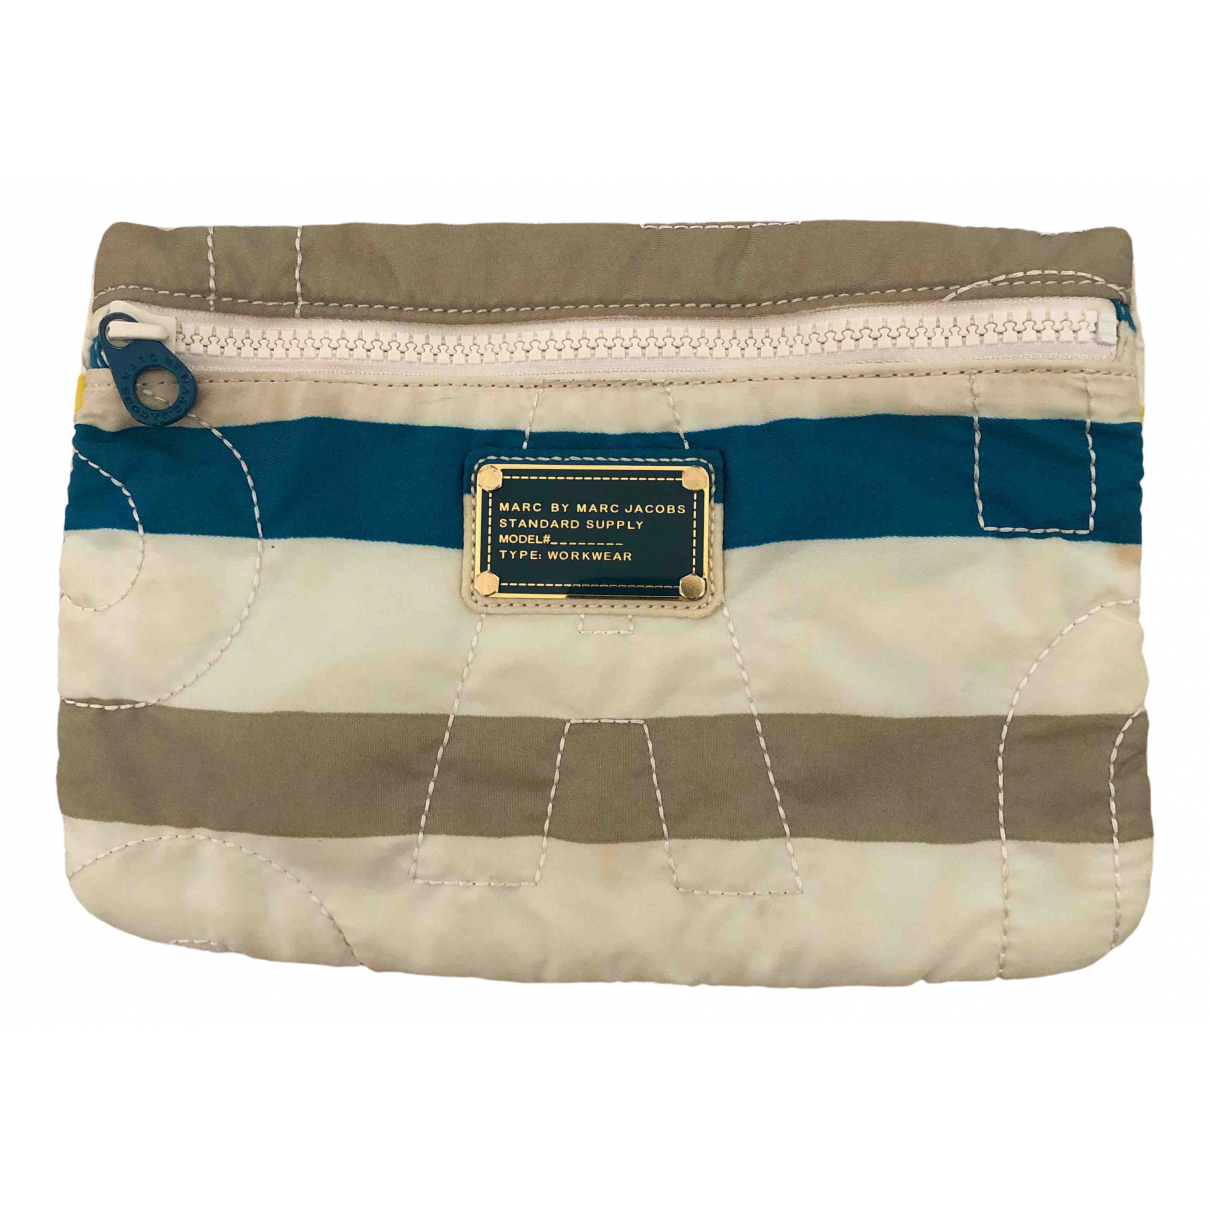 Marc By Marc Jacobs \N Multicolour Clutch bag for Women \N